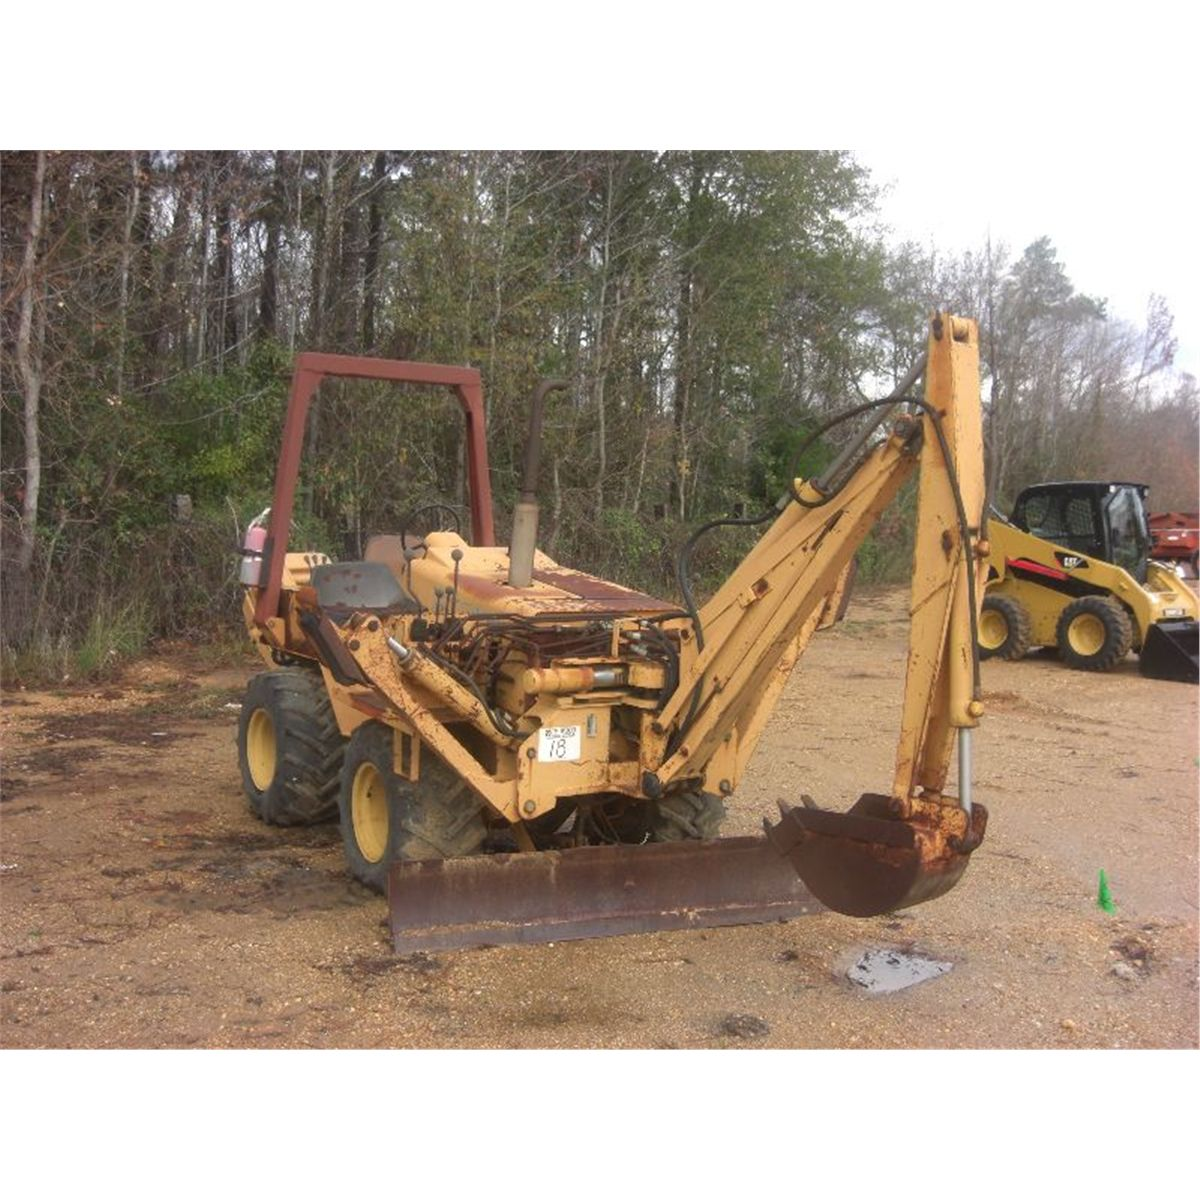 CASE DH4B TRENCHER